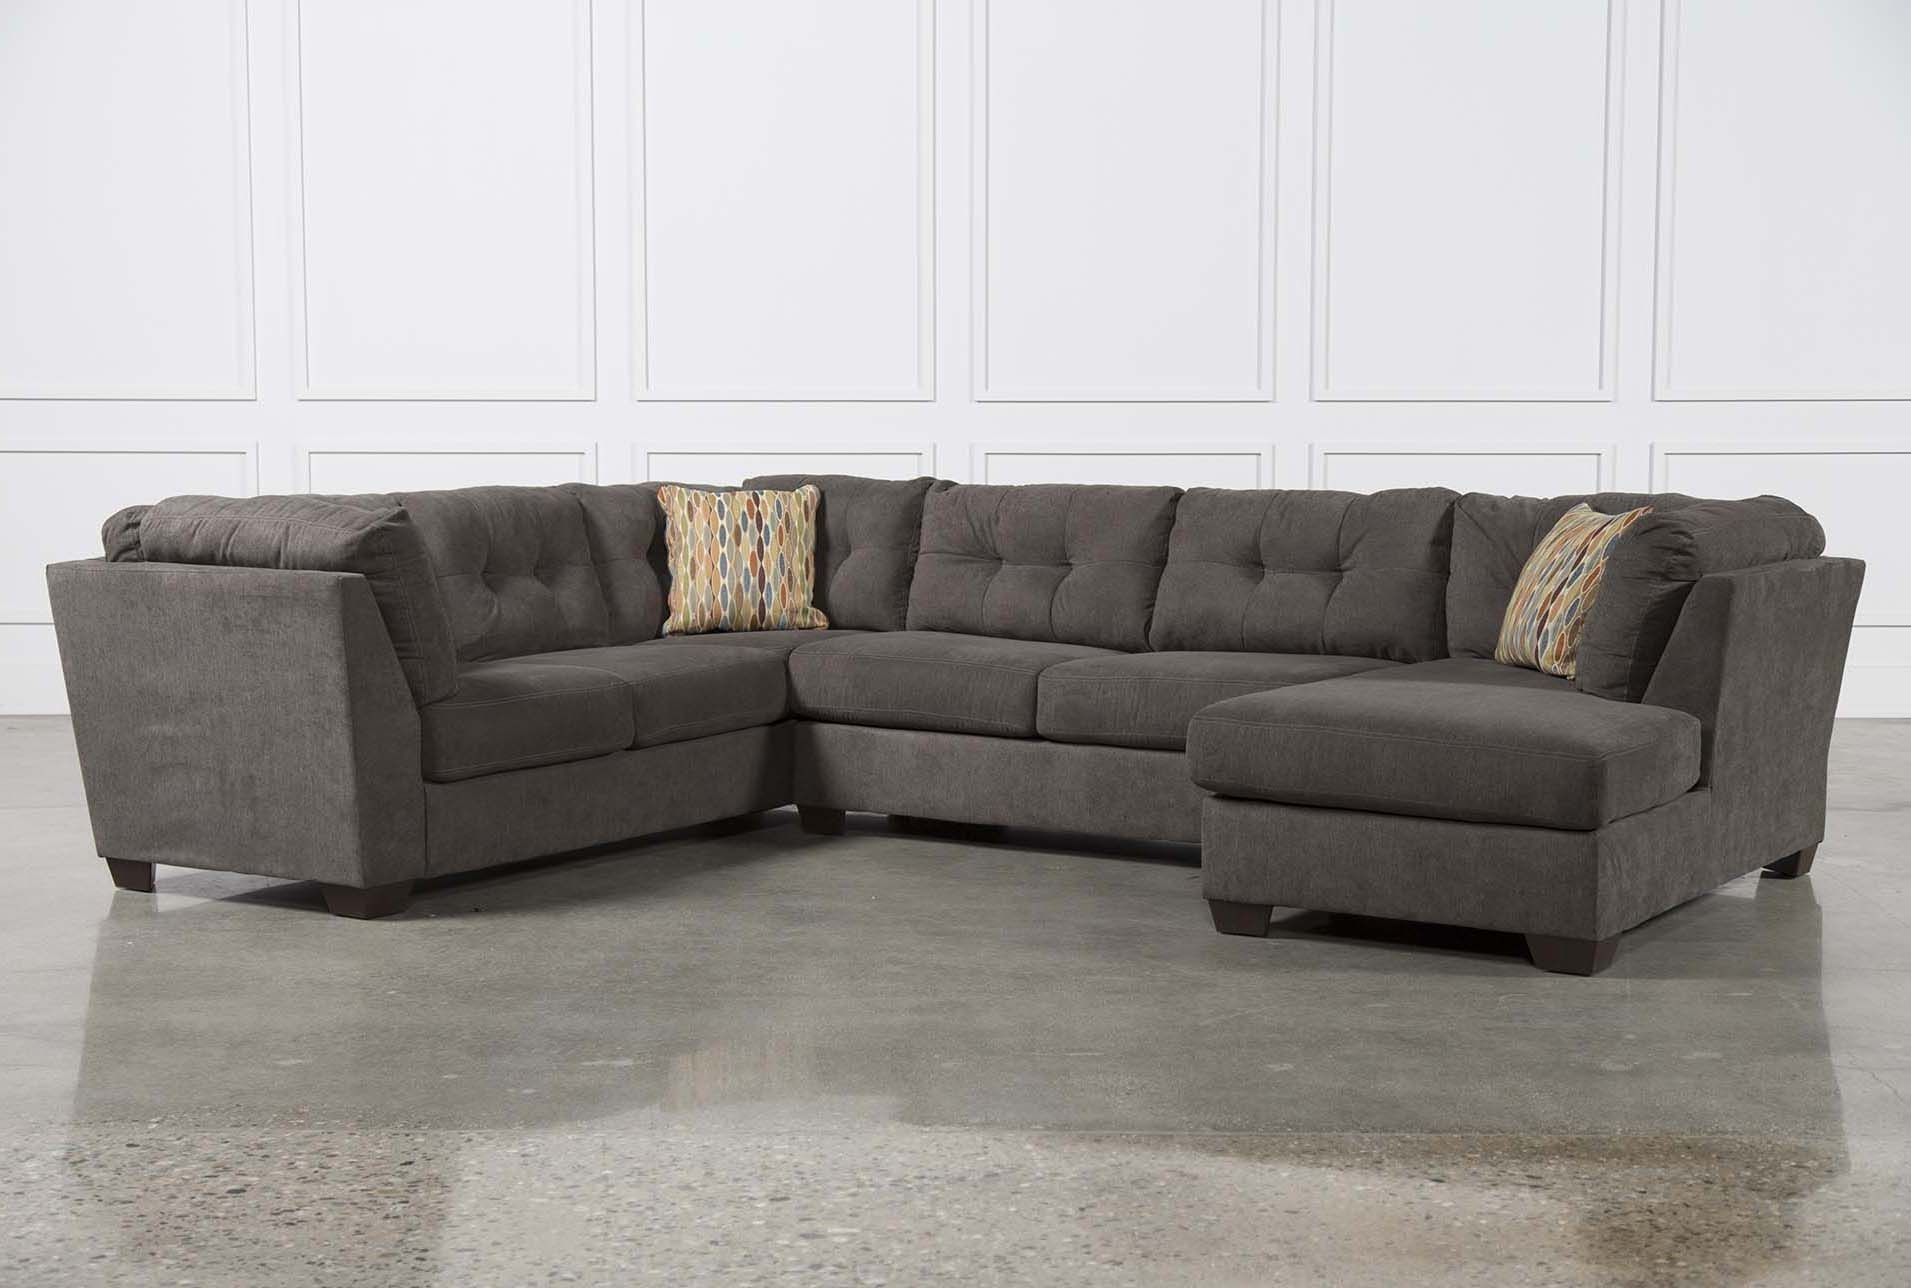 Norfolk Grey 3 Piece Sectional W/laf Chaise Throughout Norfolk Grey 3 Piece Sectionals With Laf Chaise (Photo 3 of 30)